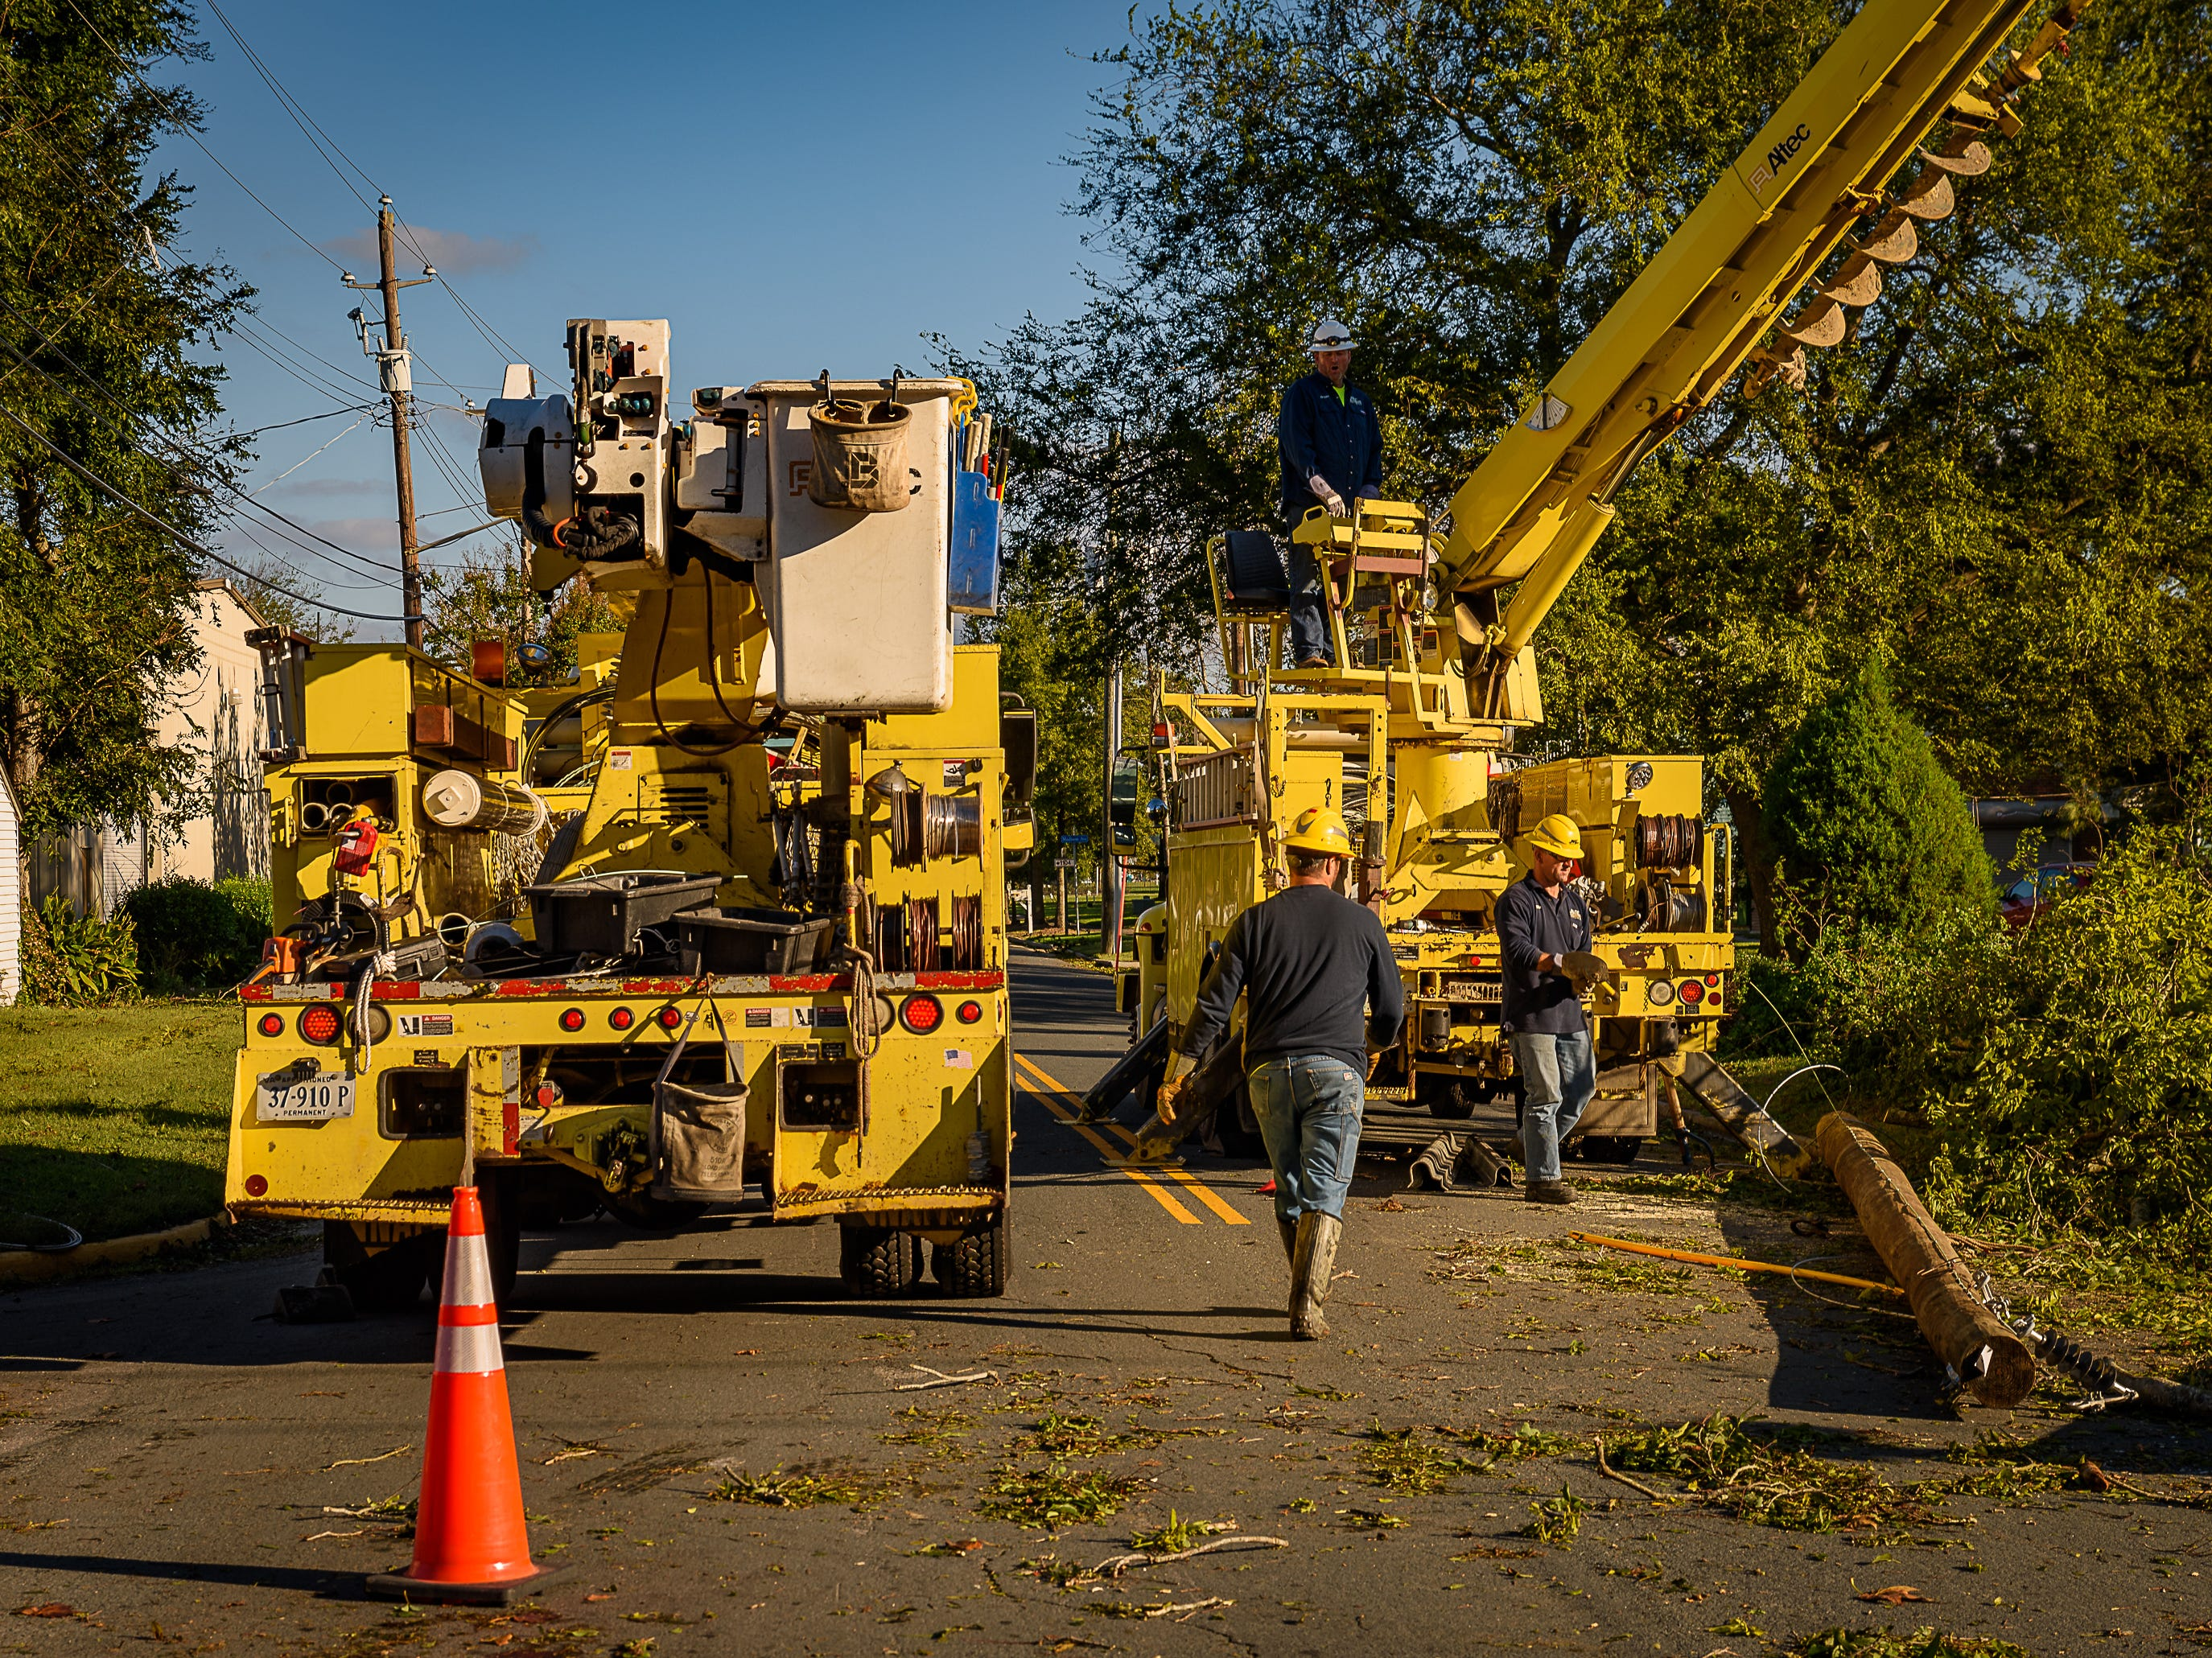 An ANEC crew works to replace a downed pole on Fig Street in Cape Charles, Virginia.